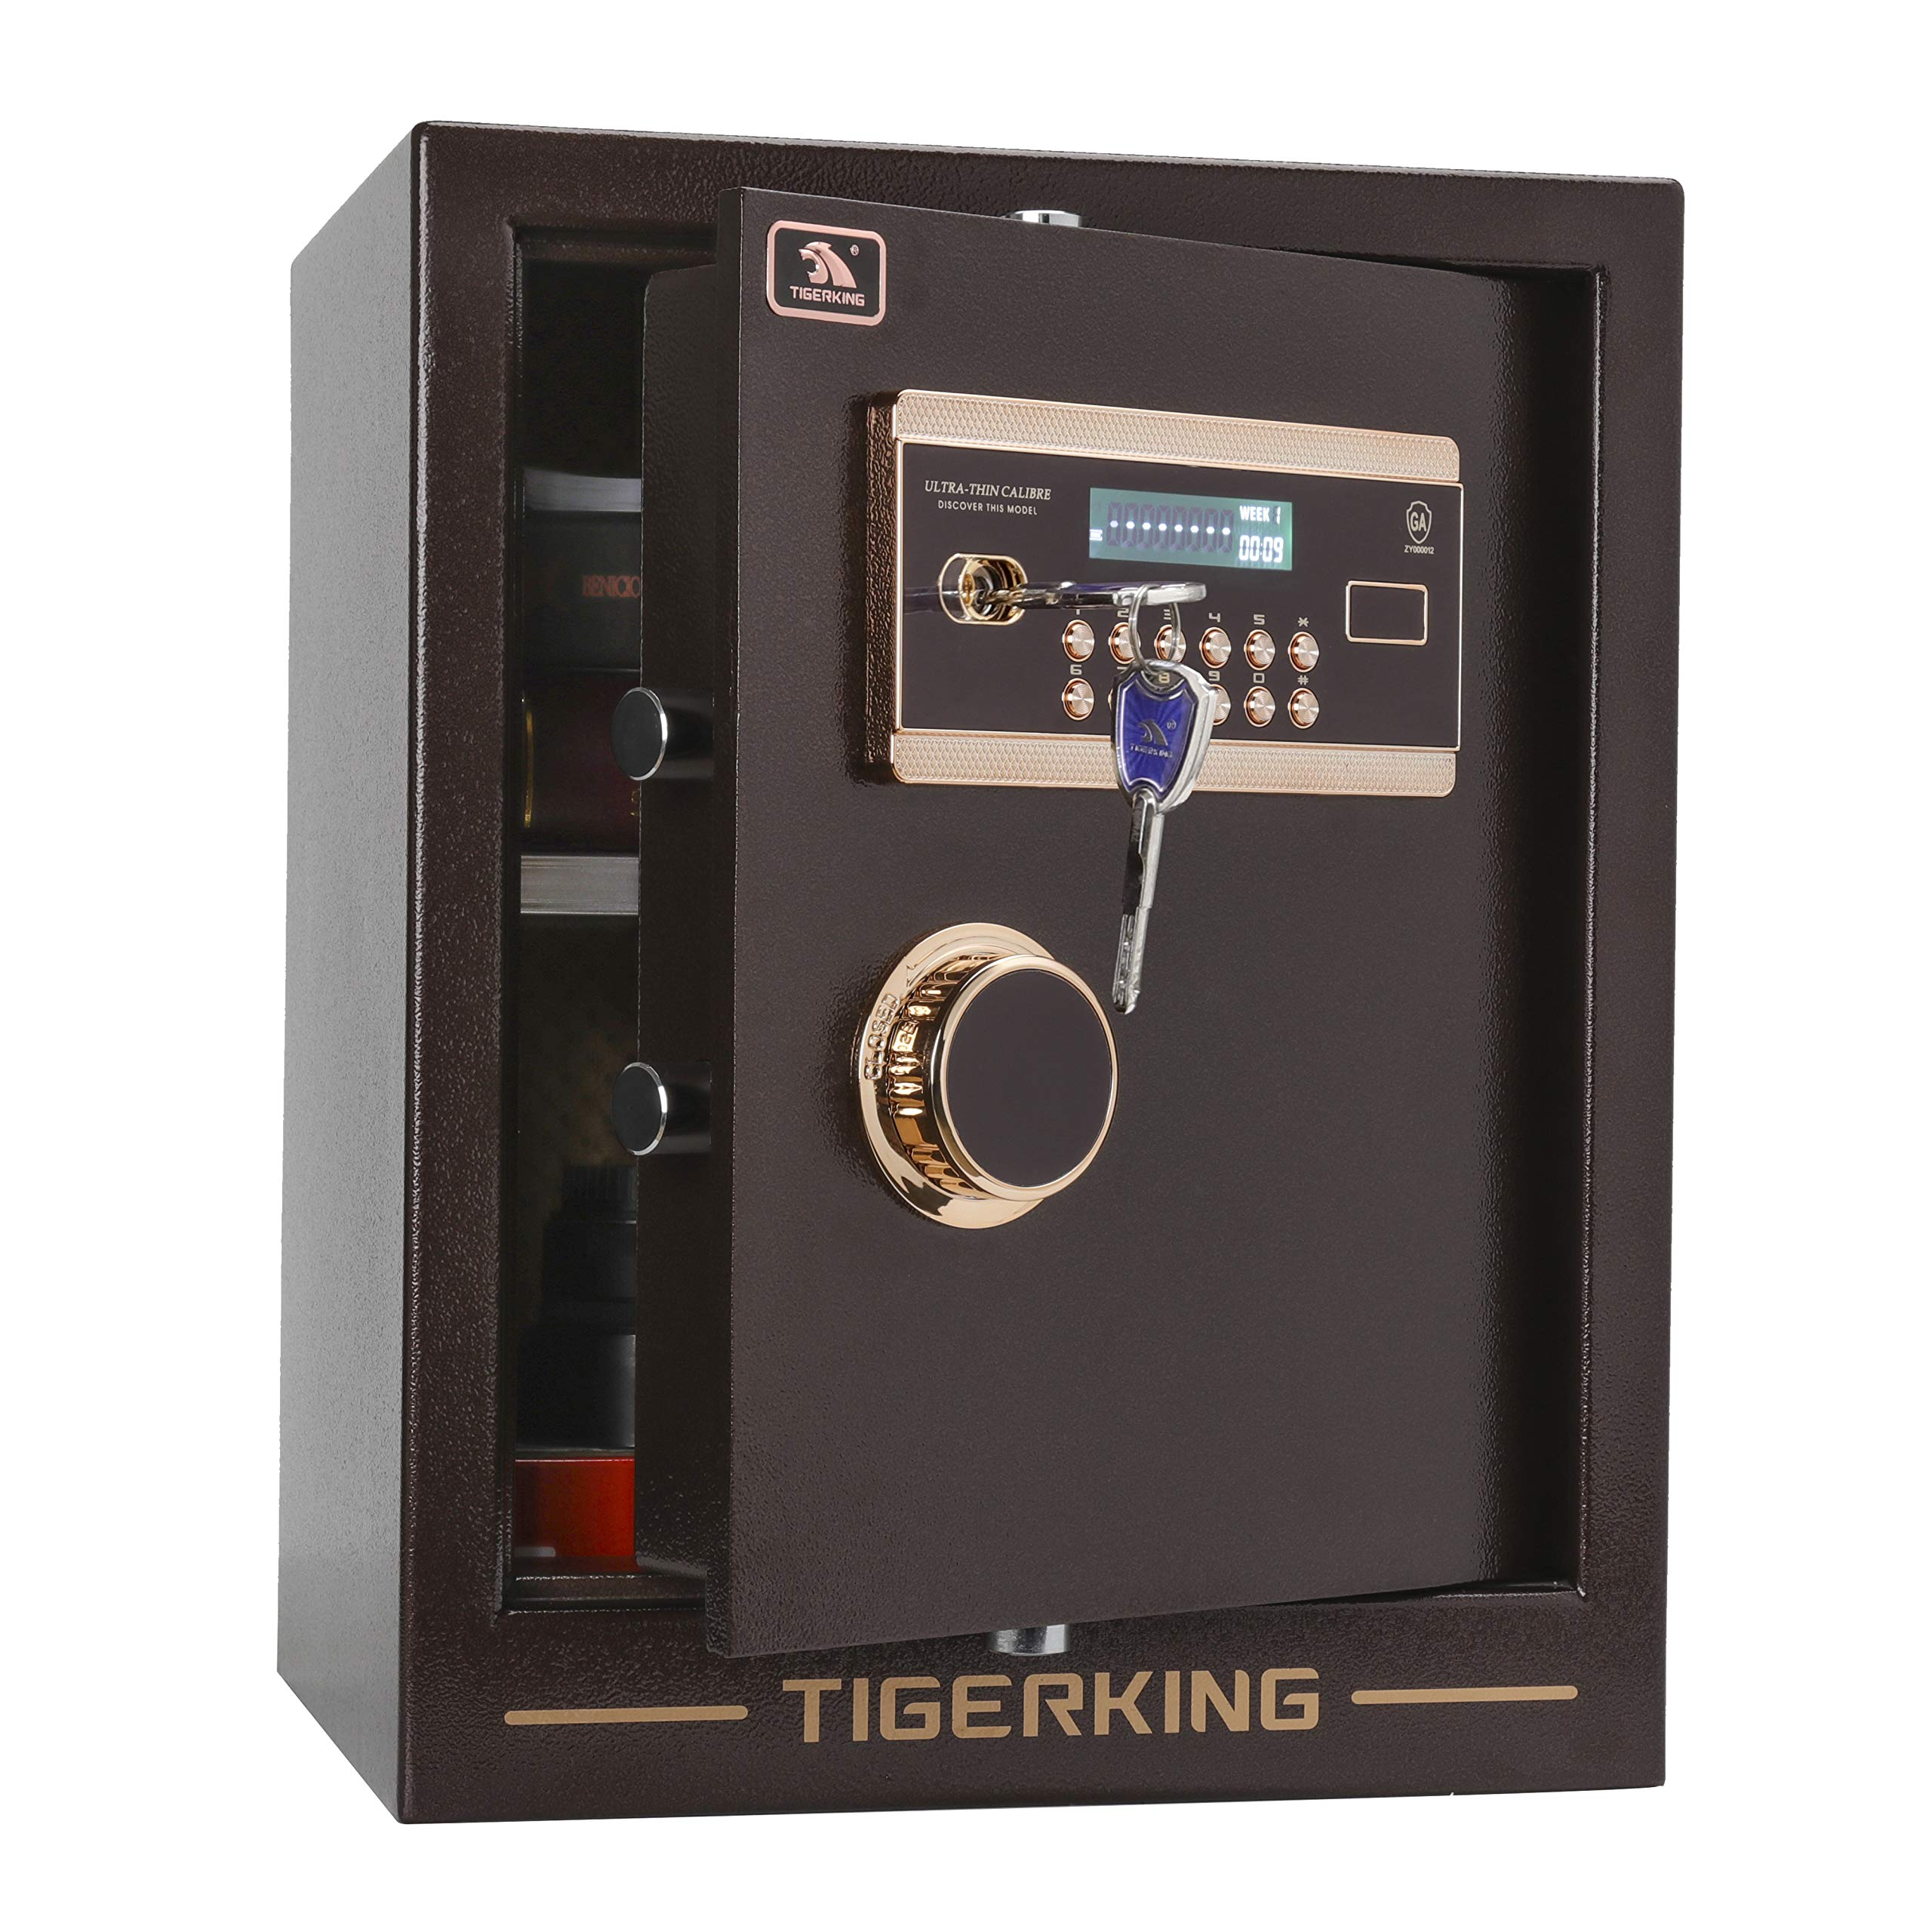 TIGERKING Digital Security Safe Box Solid Alloy Steel Construction with 4 Live-Locking Bolts Password Plus Key Setting for Home Office Hotel 1. 34 Cubic Feet